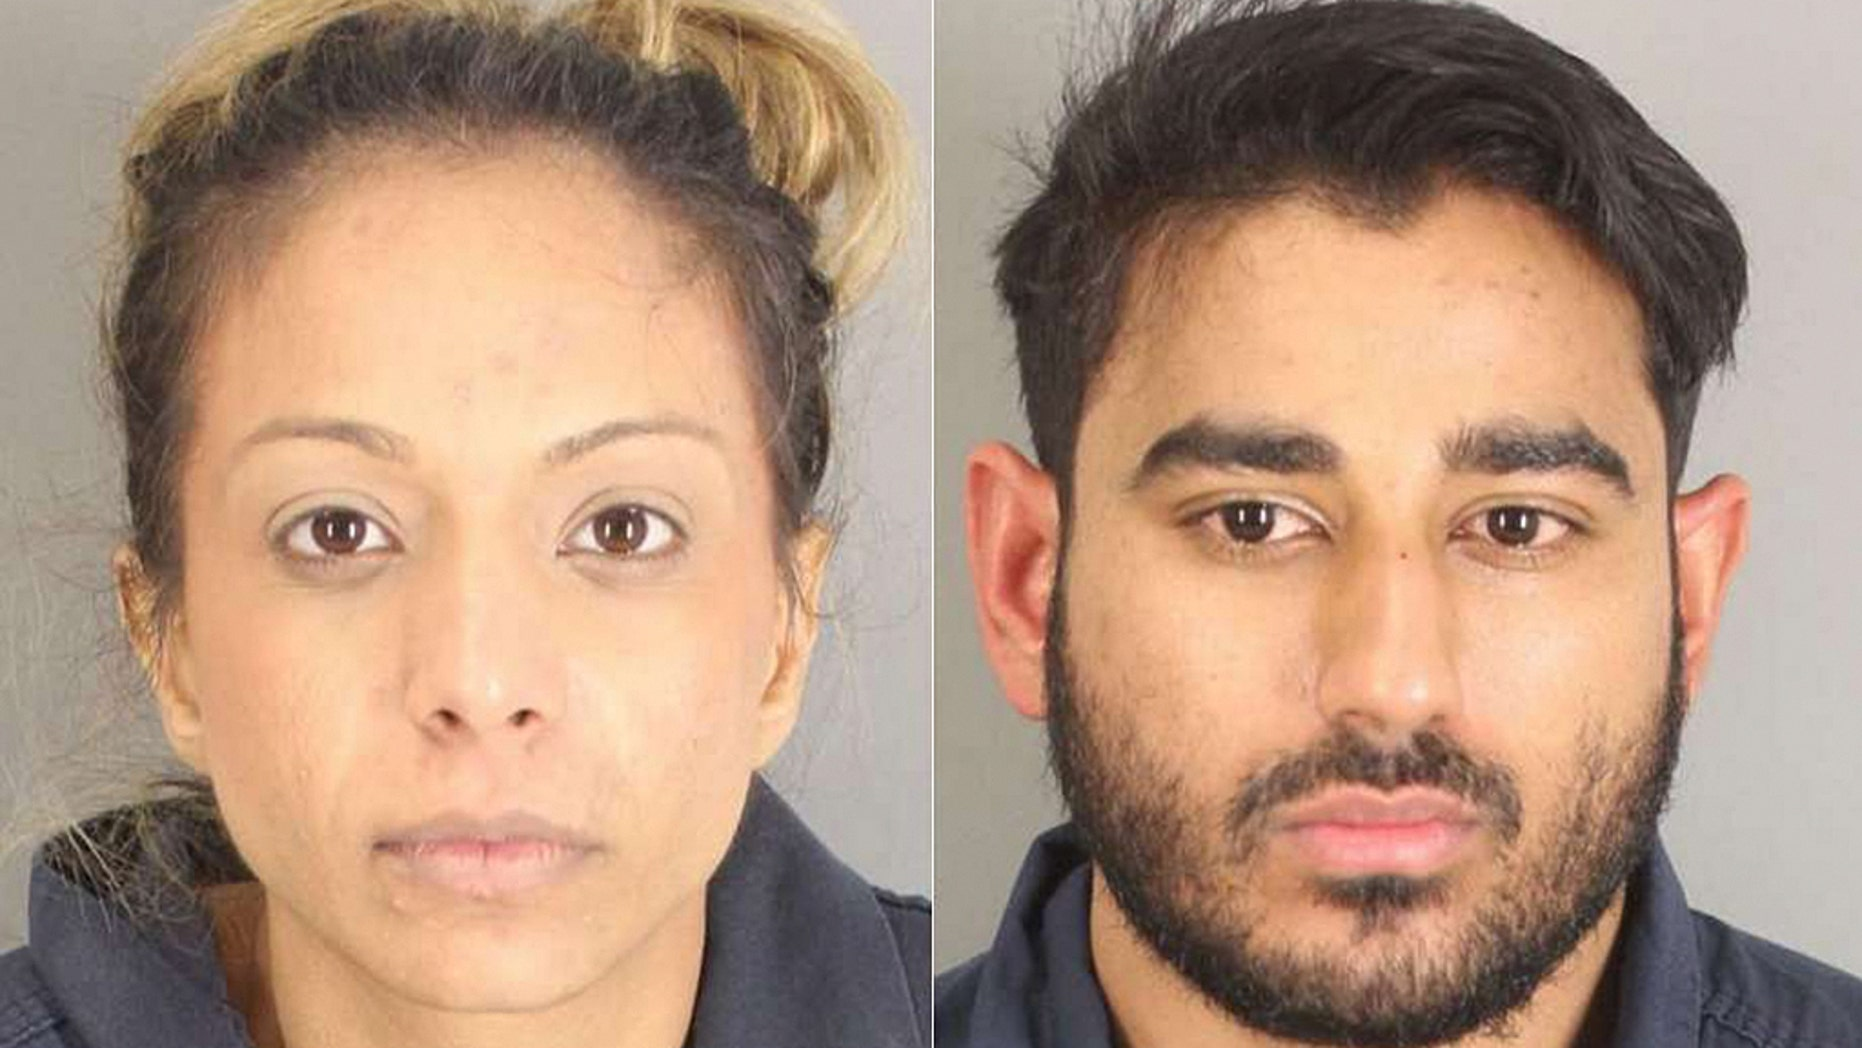 Couple arrested for trying to smuggle marijuana through airport